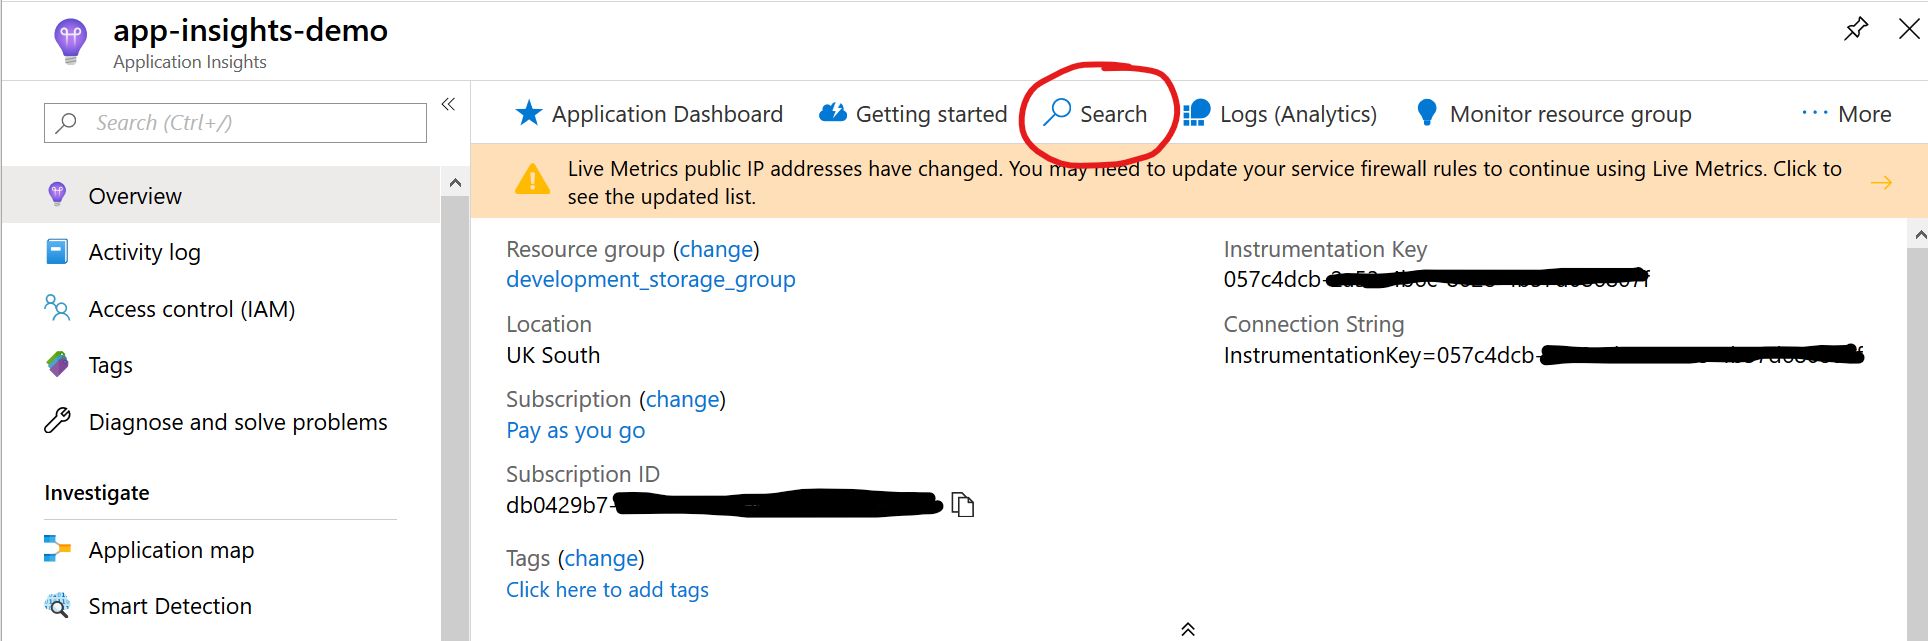 app-insights-search-button